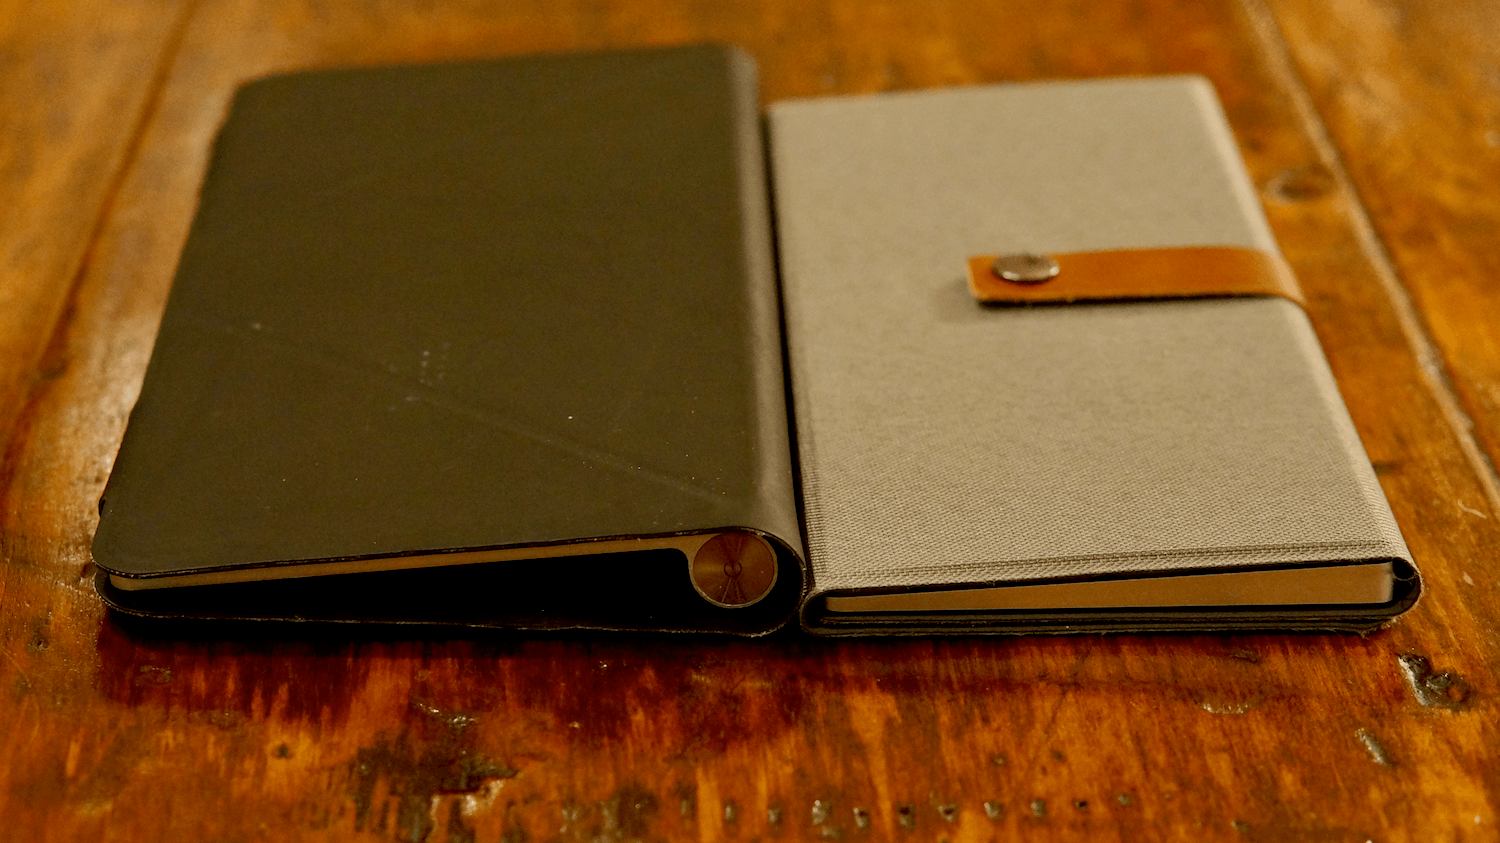 The Incase Origami case (left) and Canopy (right).